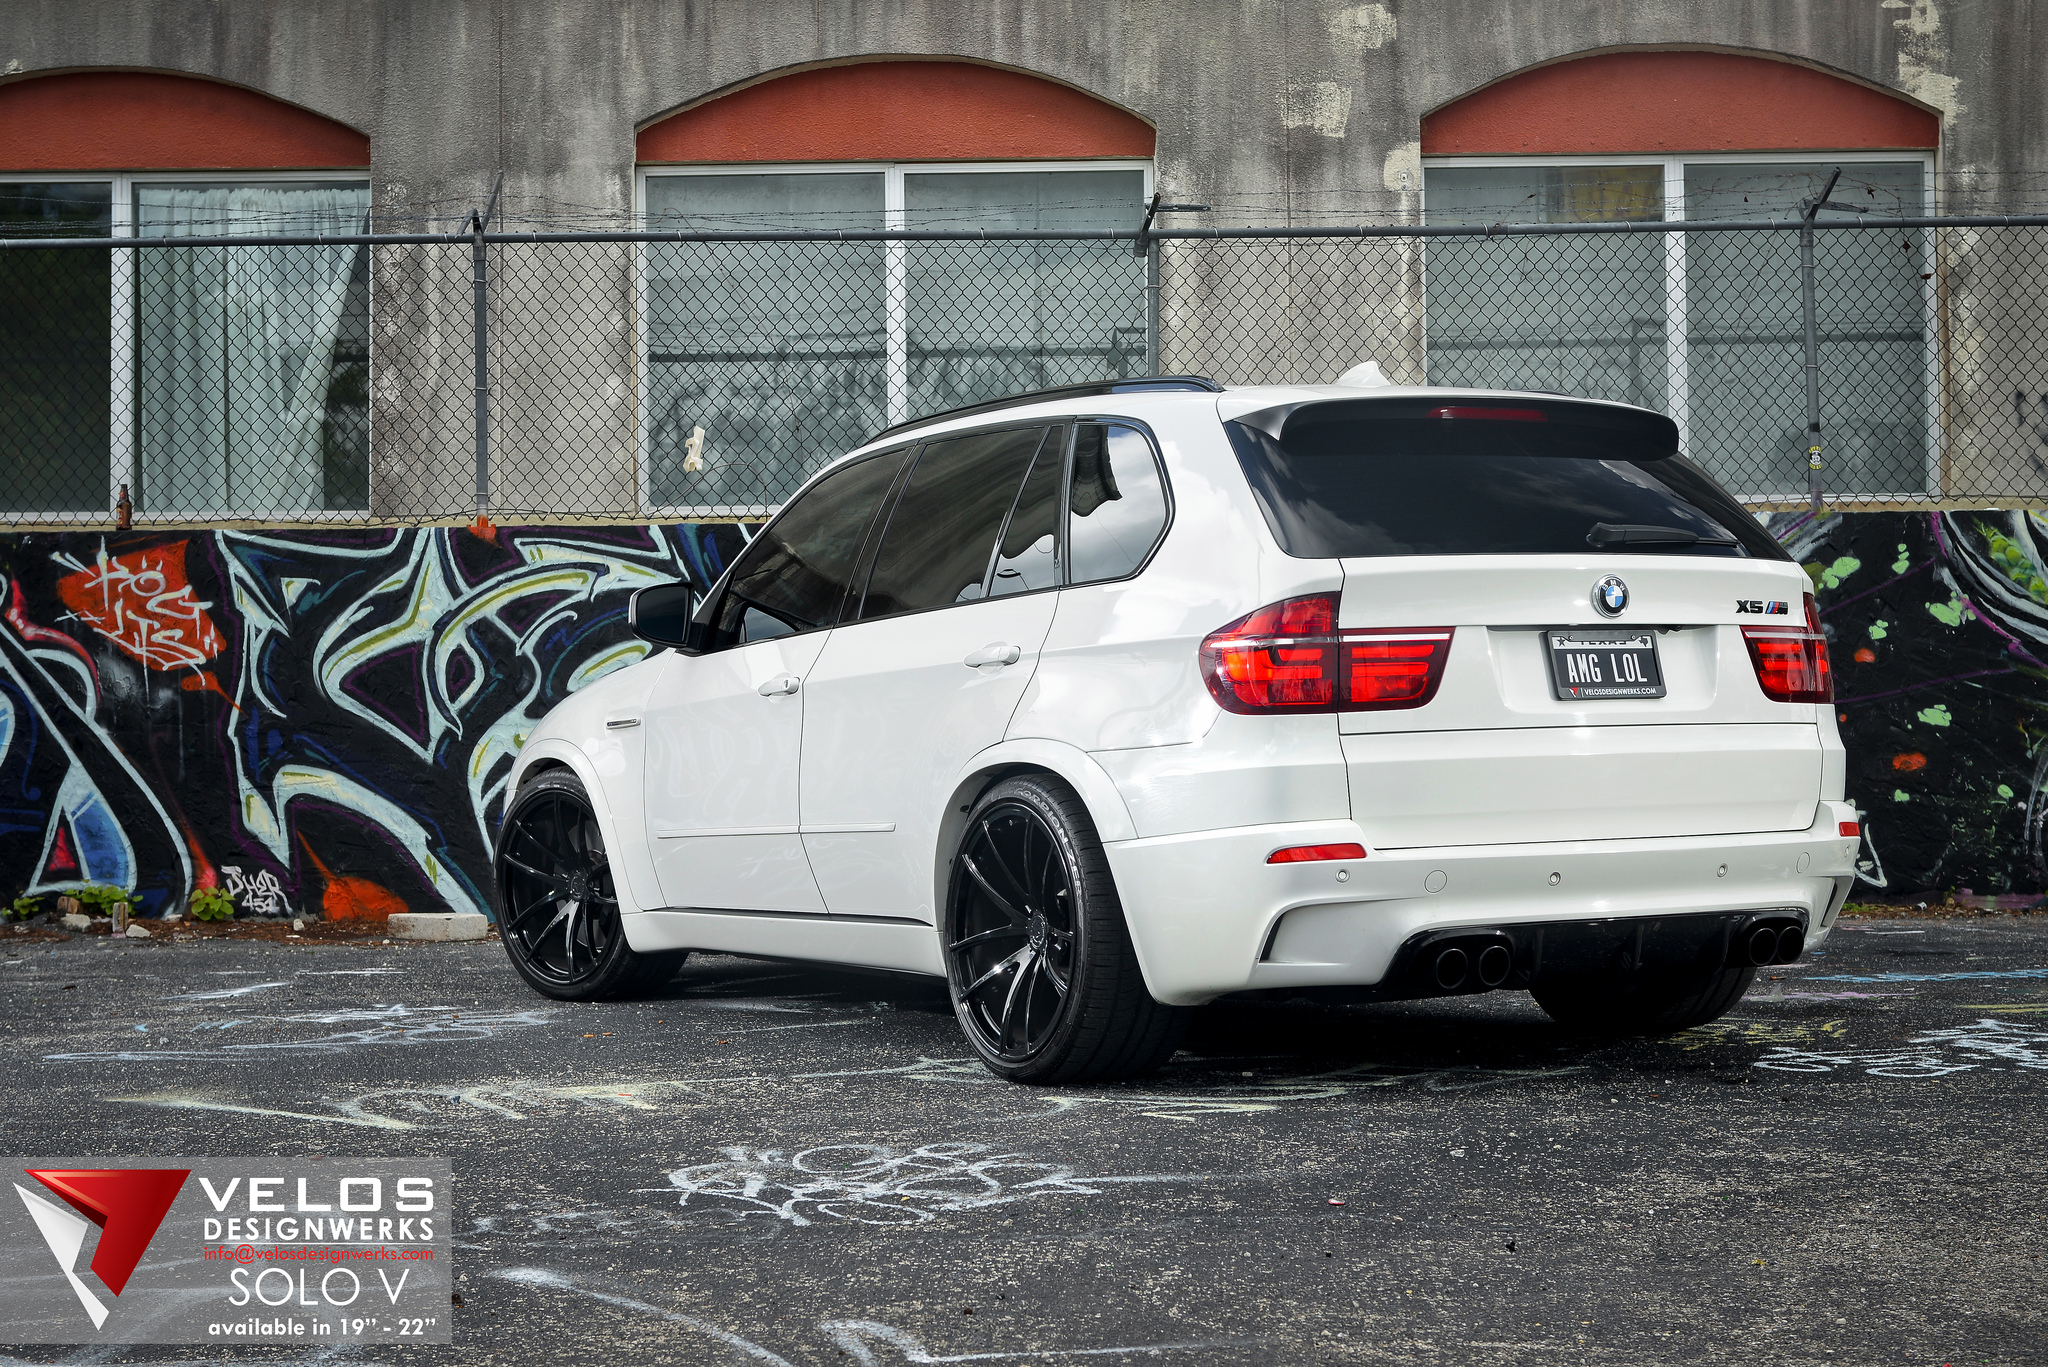 Alpine White Bmw X5m On 22 Quot Velos Solo V Wheels Velos